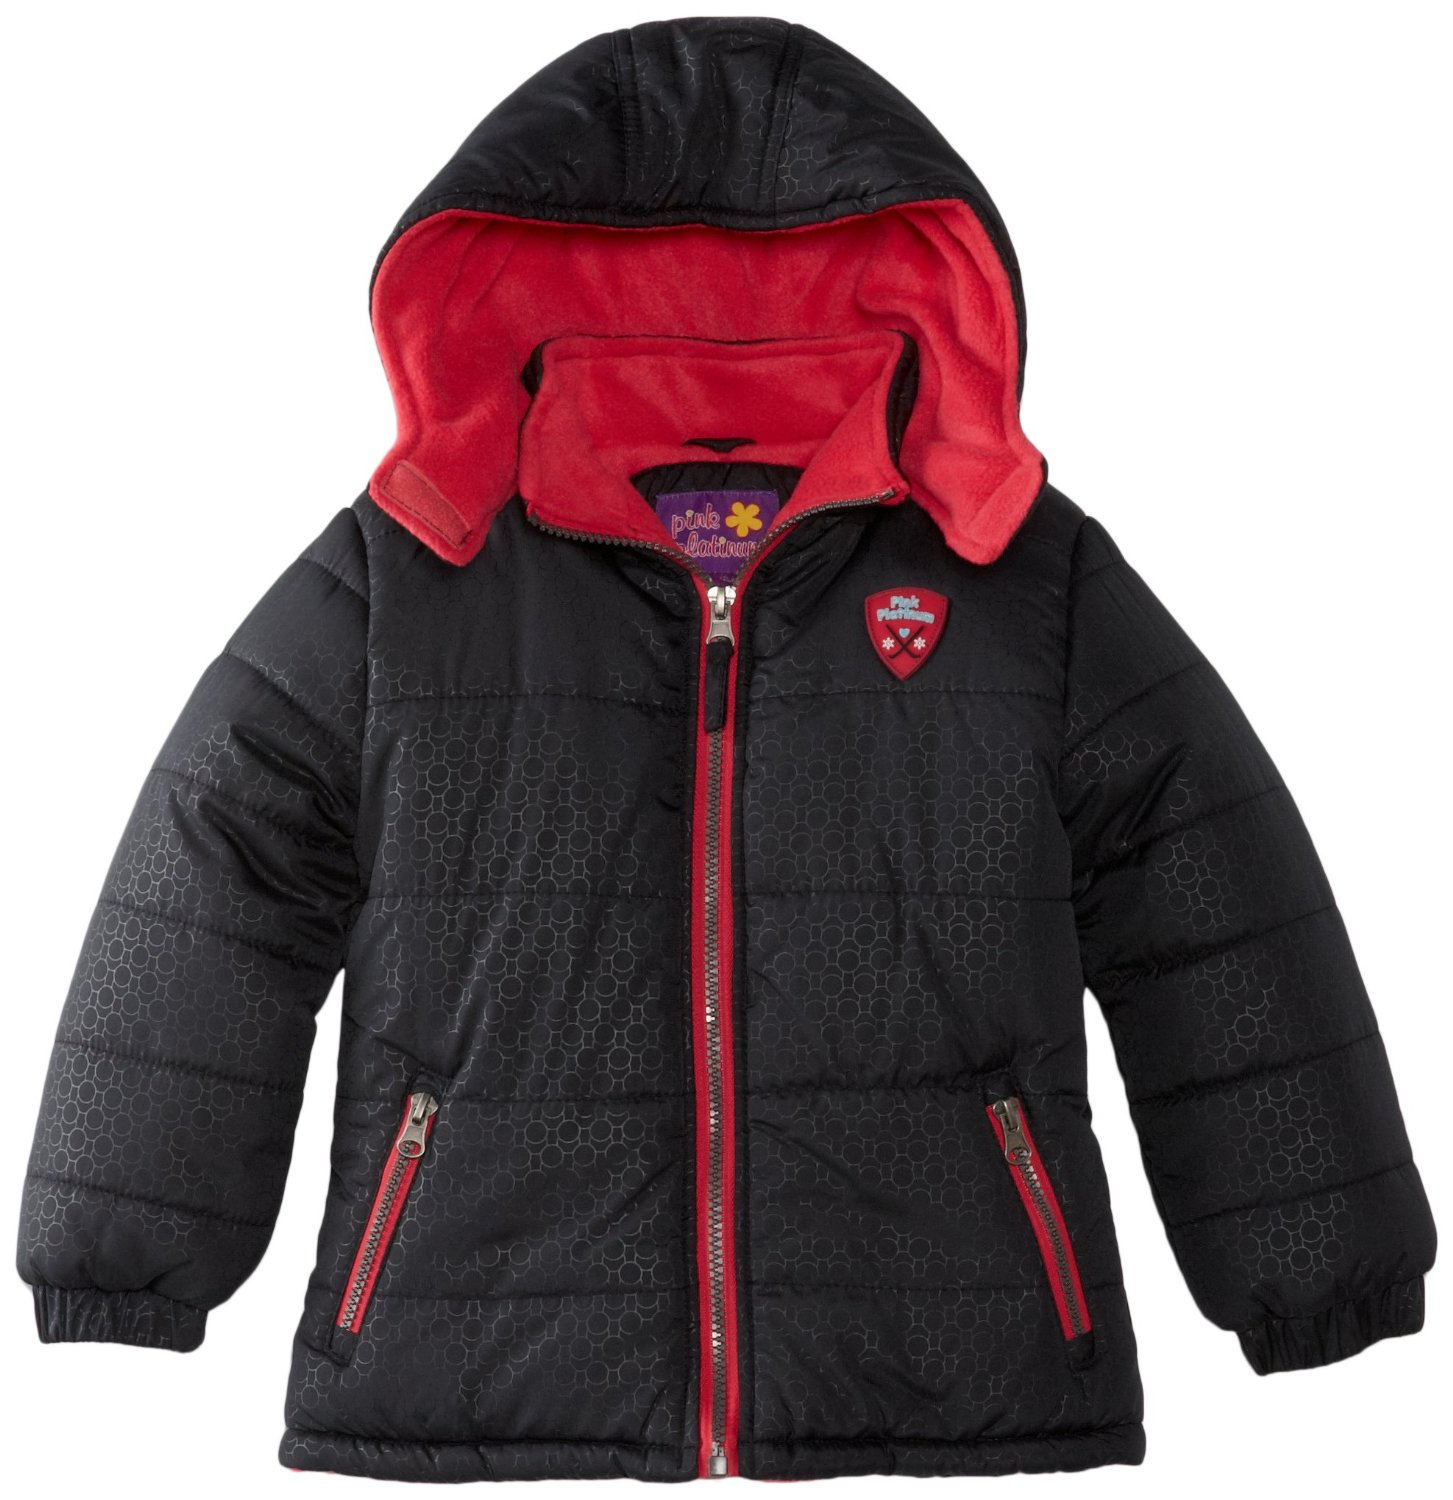 Pink Platinum Toddler Girls Winter Jacket/Coat Black Solid Contrast Zipper 2-4T at Sears.com